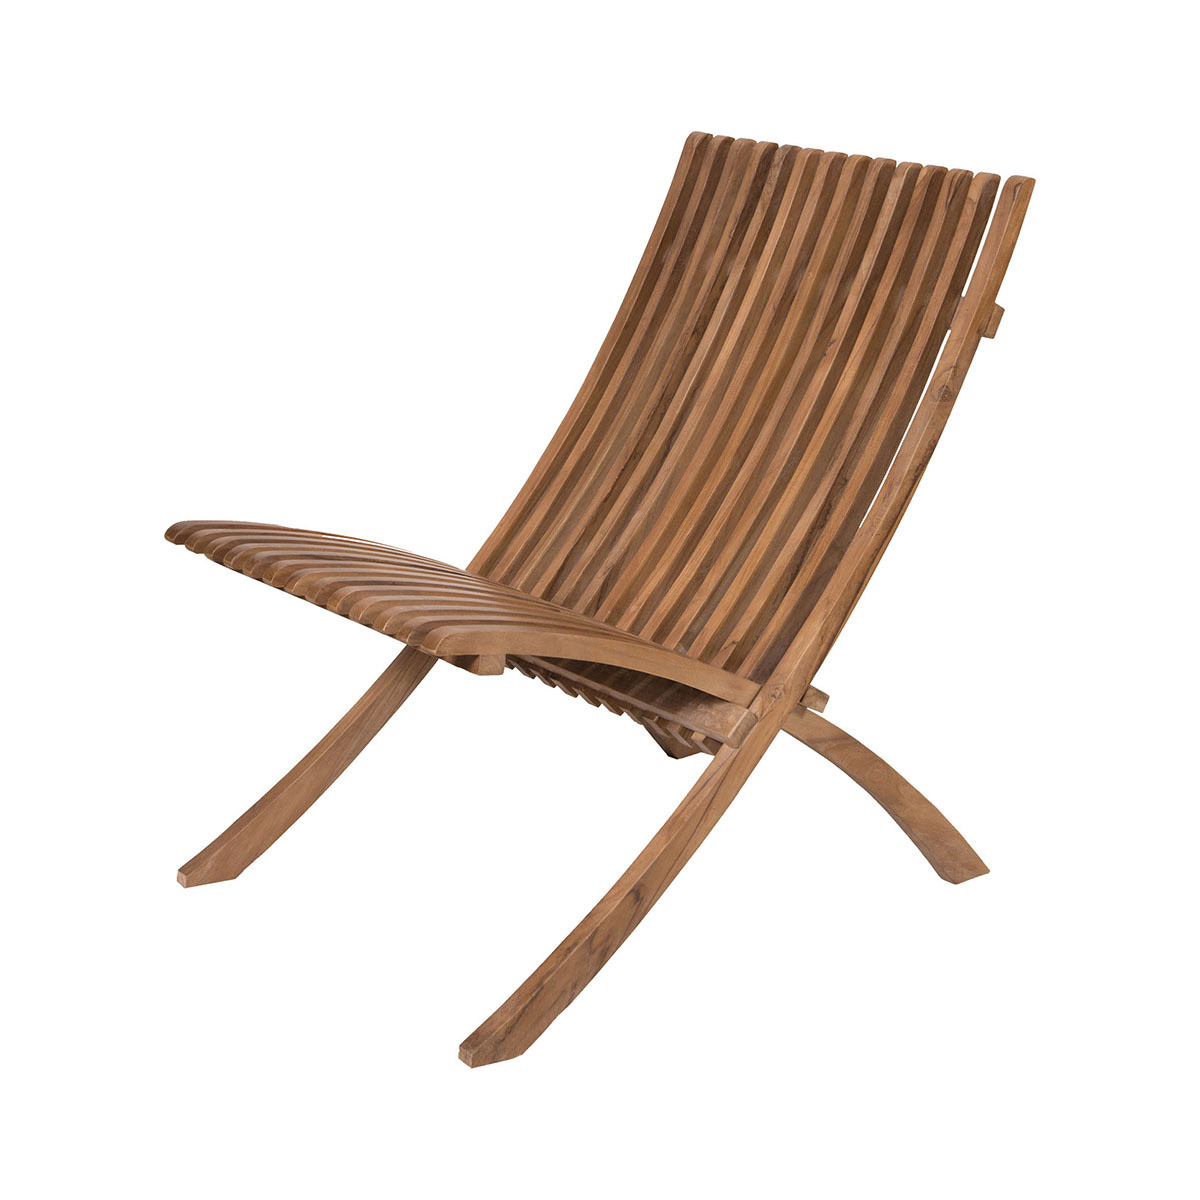 Details About Guildmaster 6917508et Teak Euro Teak Oil Outdoor Seating Throughout Latest 2 Person Light Teak Oil Wood Outdoor Swings (View 5 of 25)